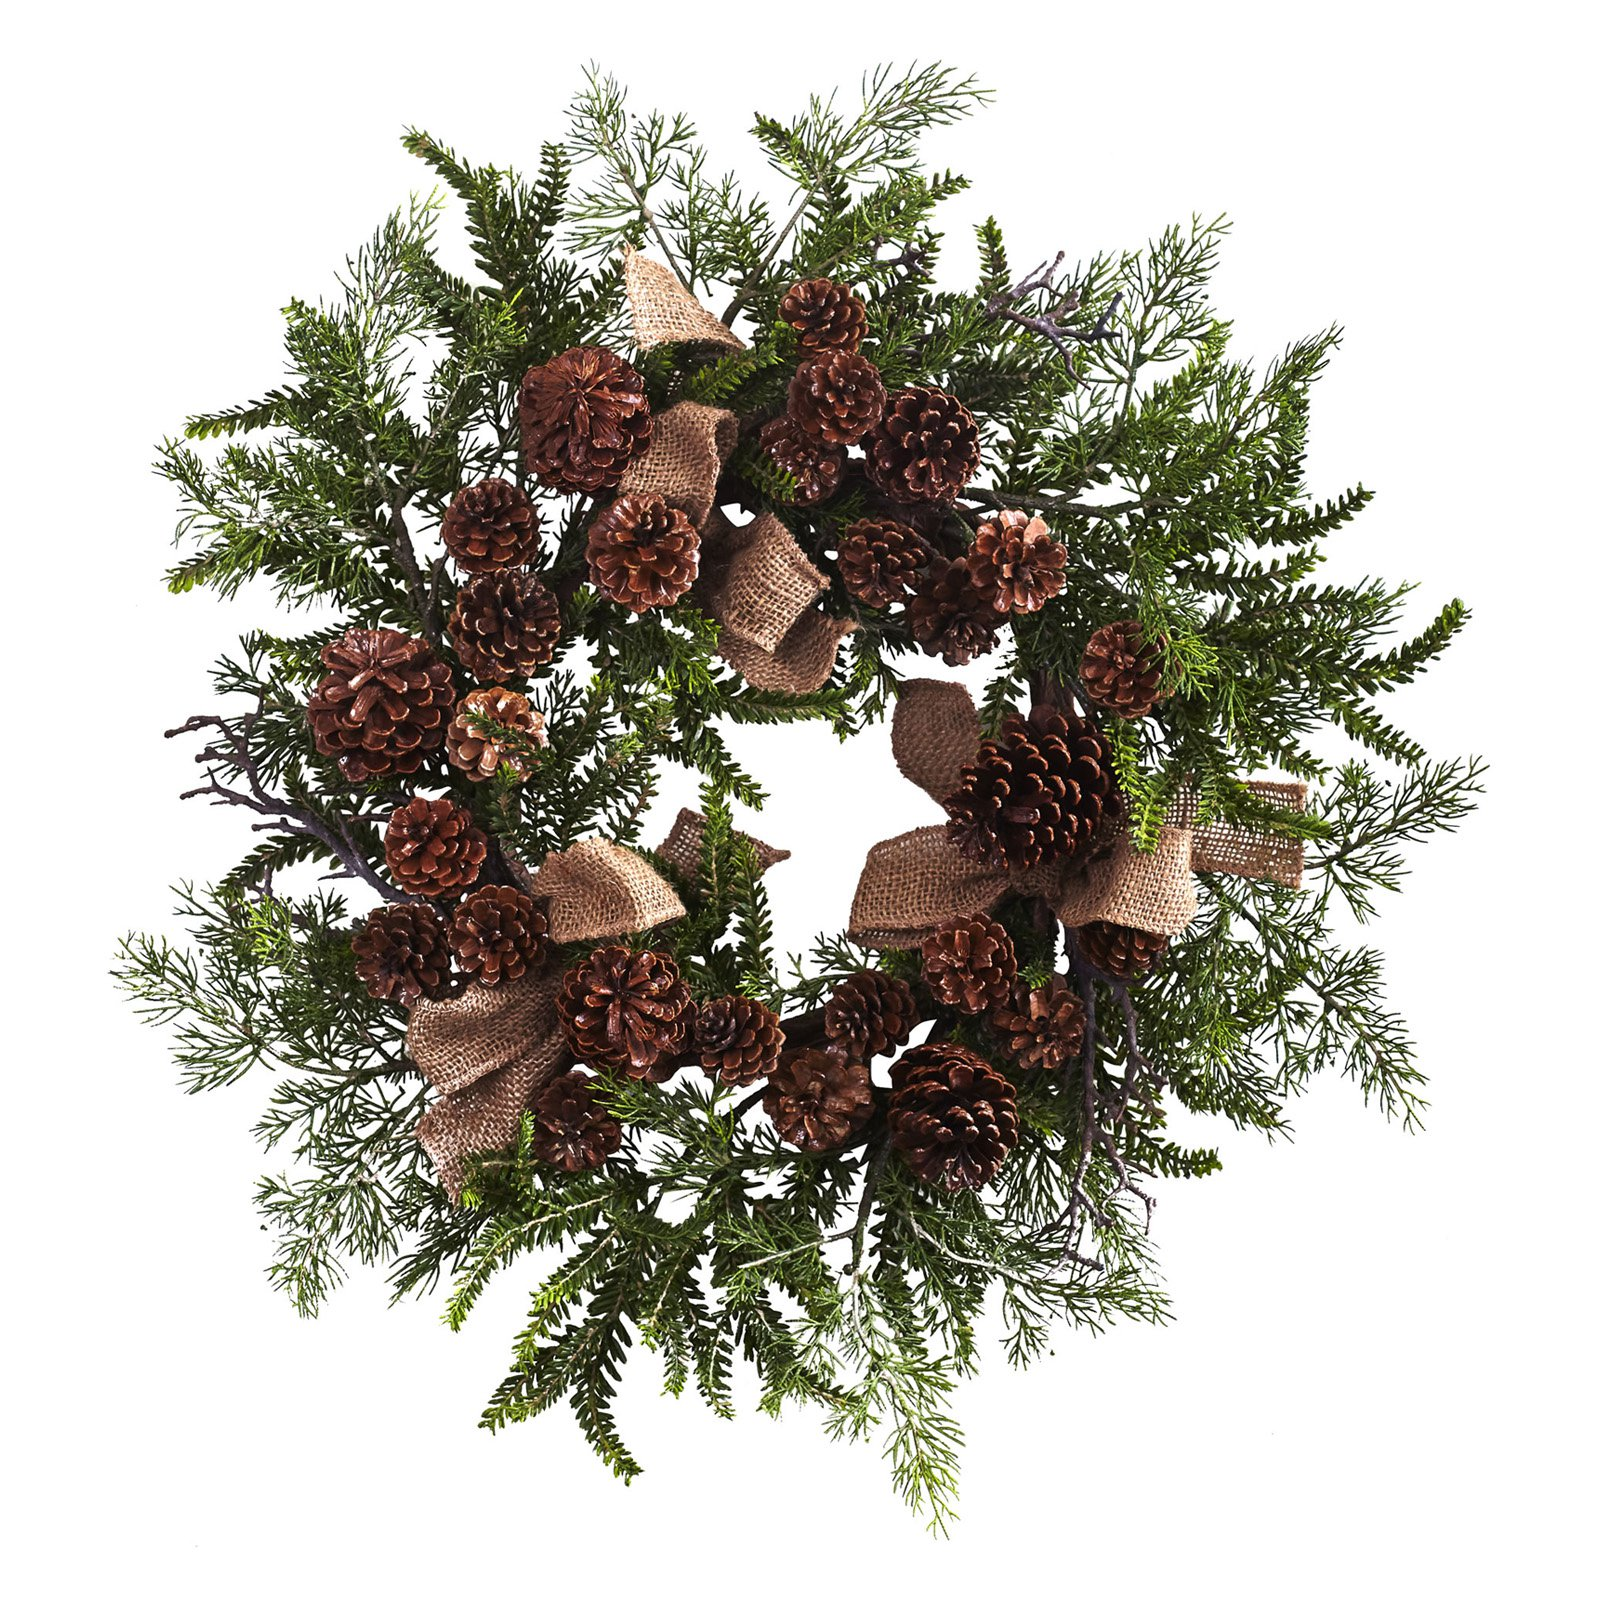 Nearly Natural 24 in. Unlit Pine and Pine Cone Wreath with Burlap Bows